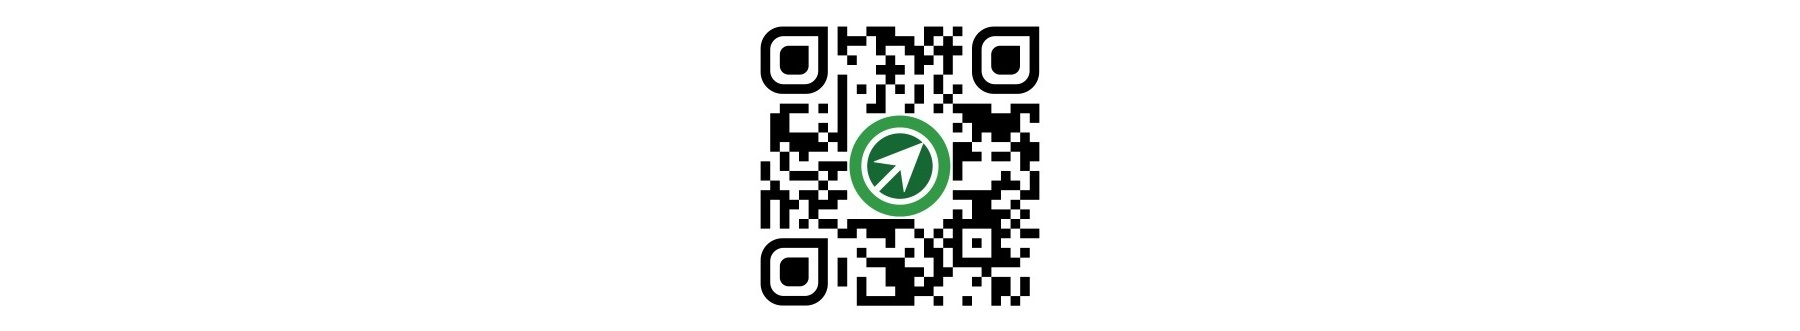 https://campaign-image.com/zohocampaigns/479159000000716004_zc_v141_otds_qrcode_for_newsletter2.jpg